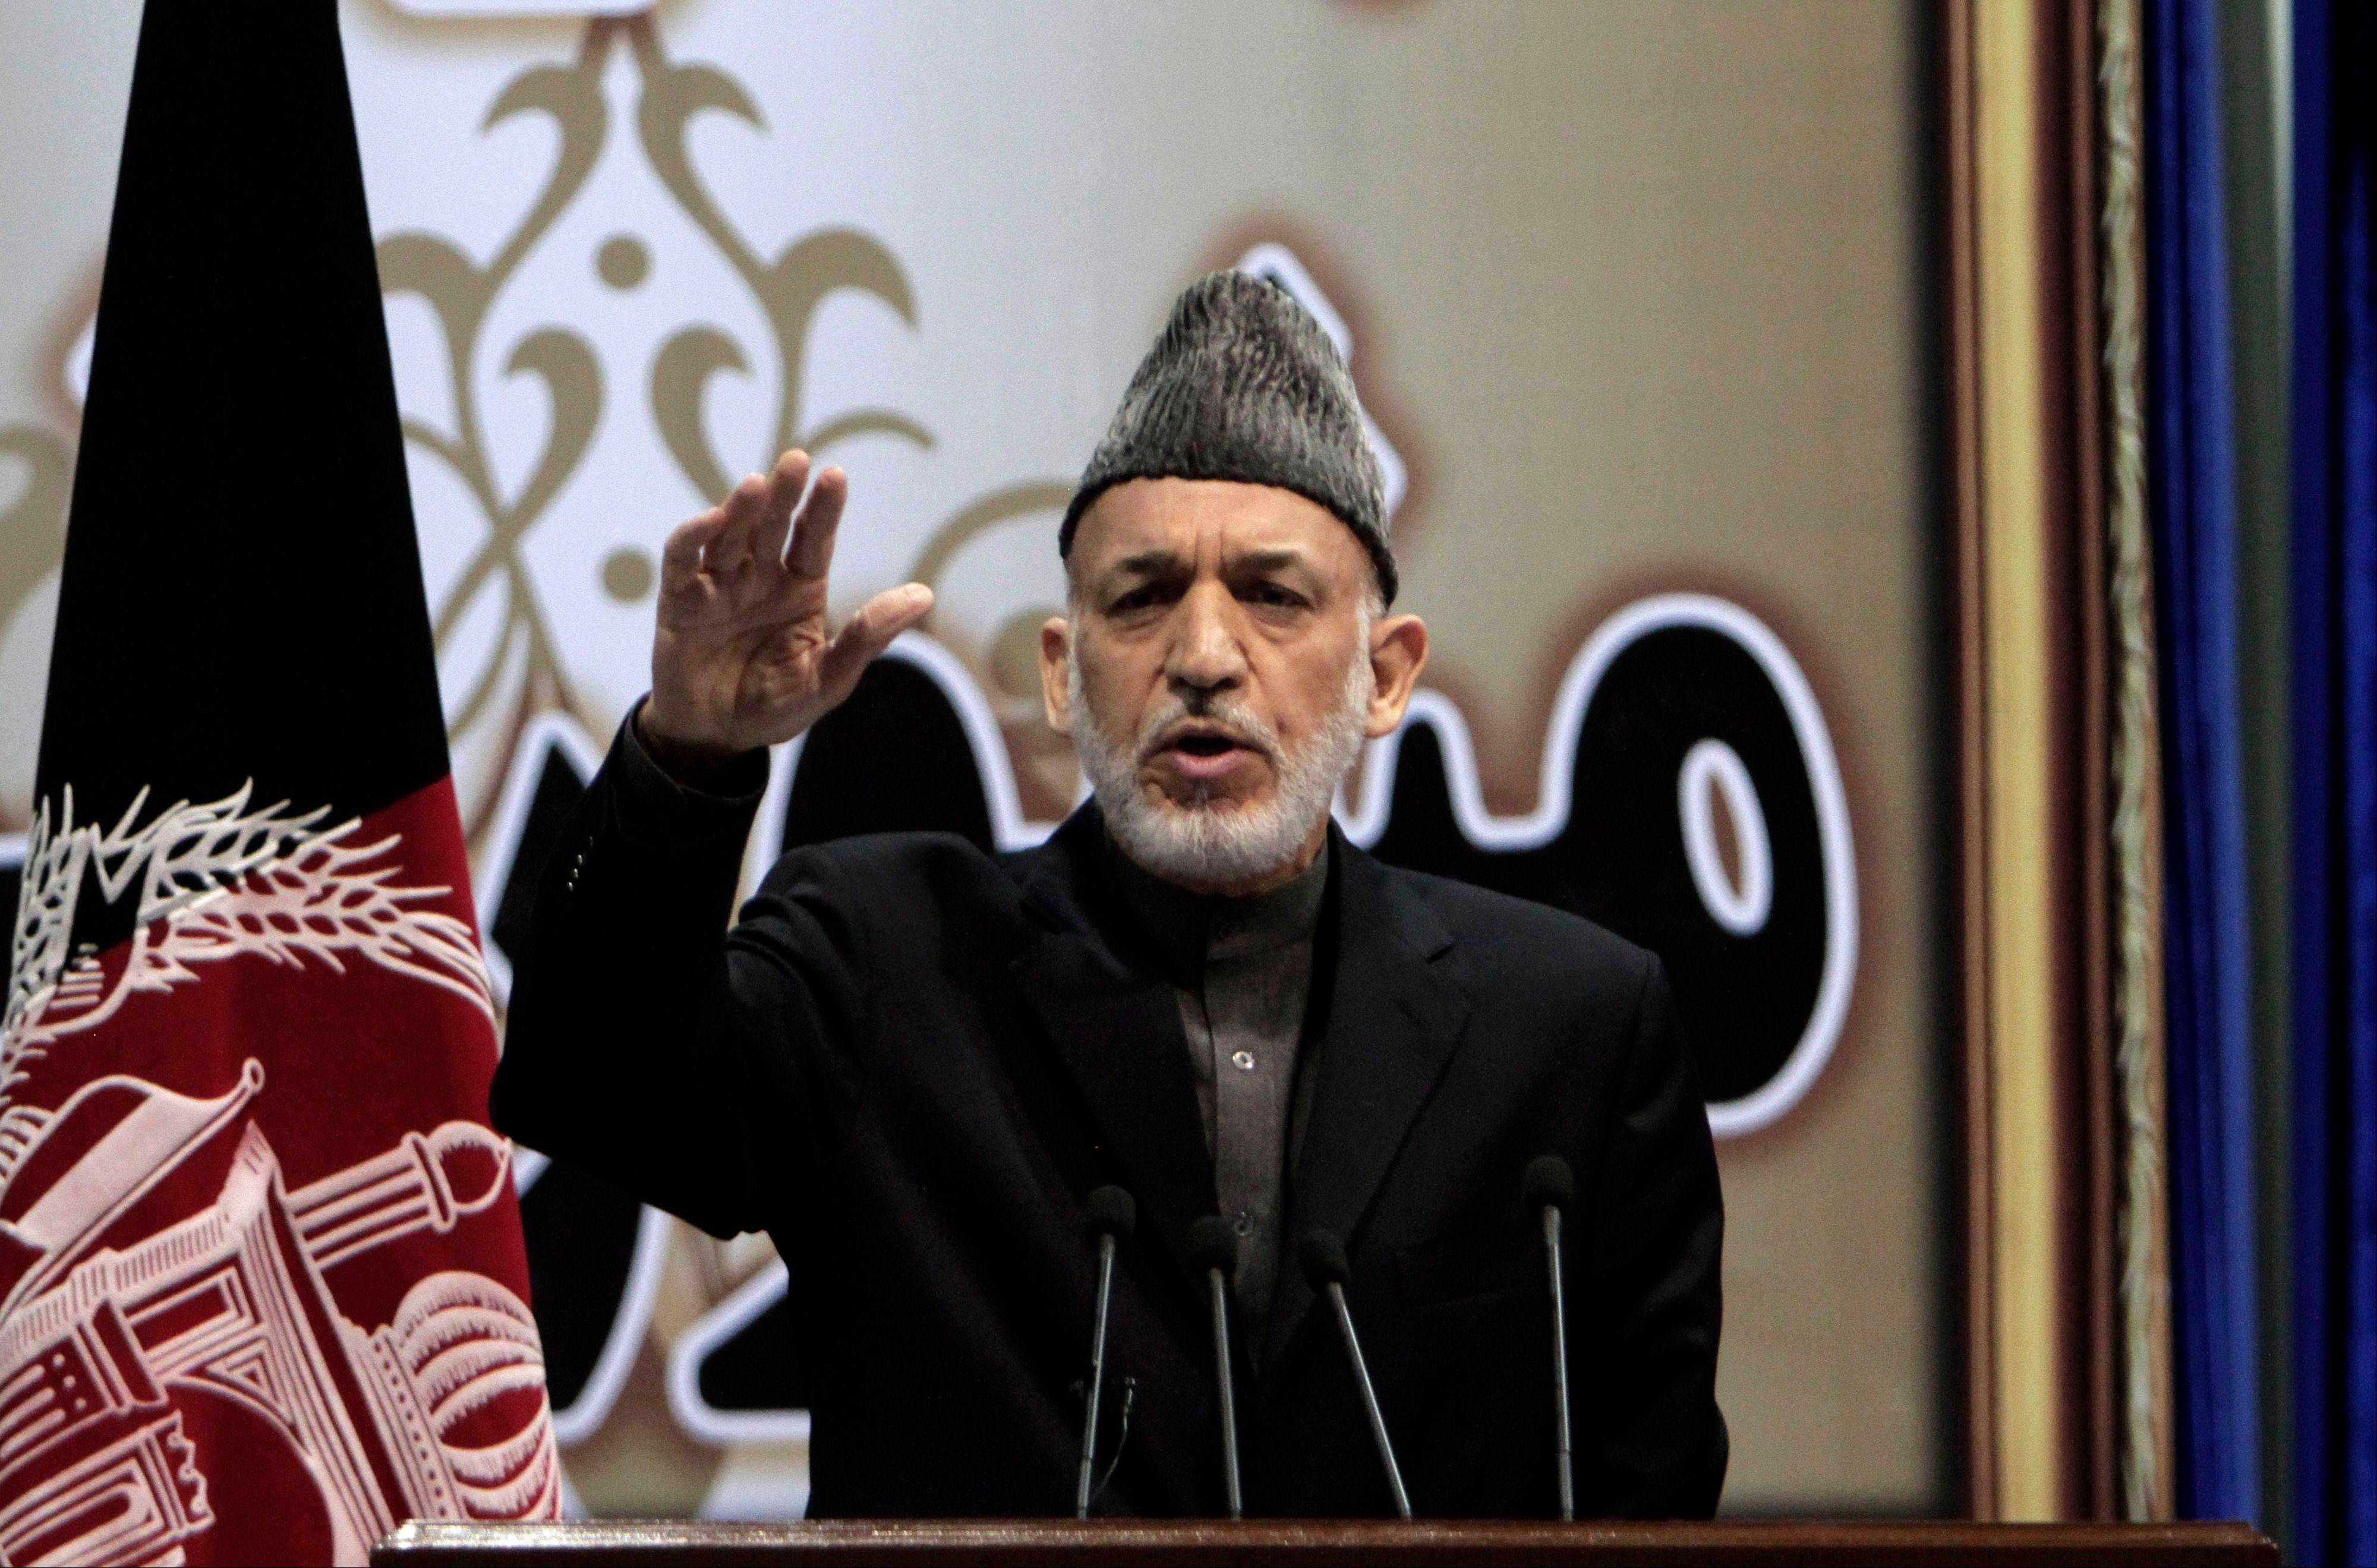 Afghan President Hamid Karzai on Sunday said he won�t immediately sign a security deal with the United States, ignoring a recommendation by an assembly of Afghan elders and leaders he do so by the end of the year. He argued Afghanistan needed more time to ensure the U.S. was committed to peace.